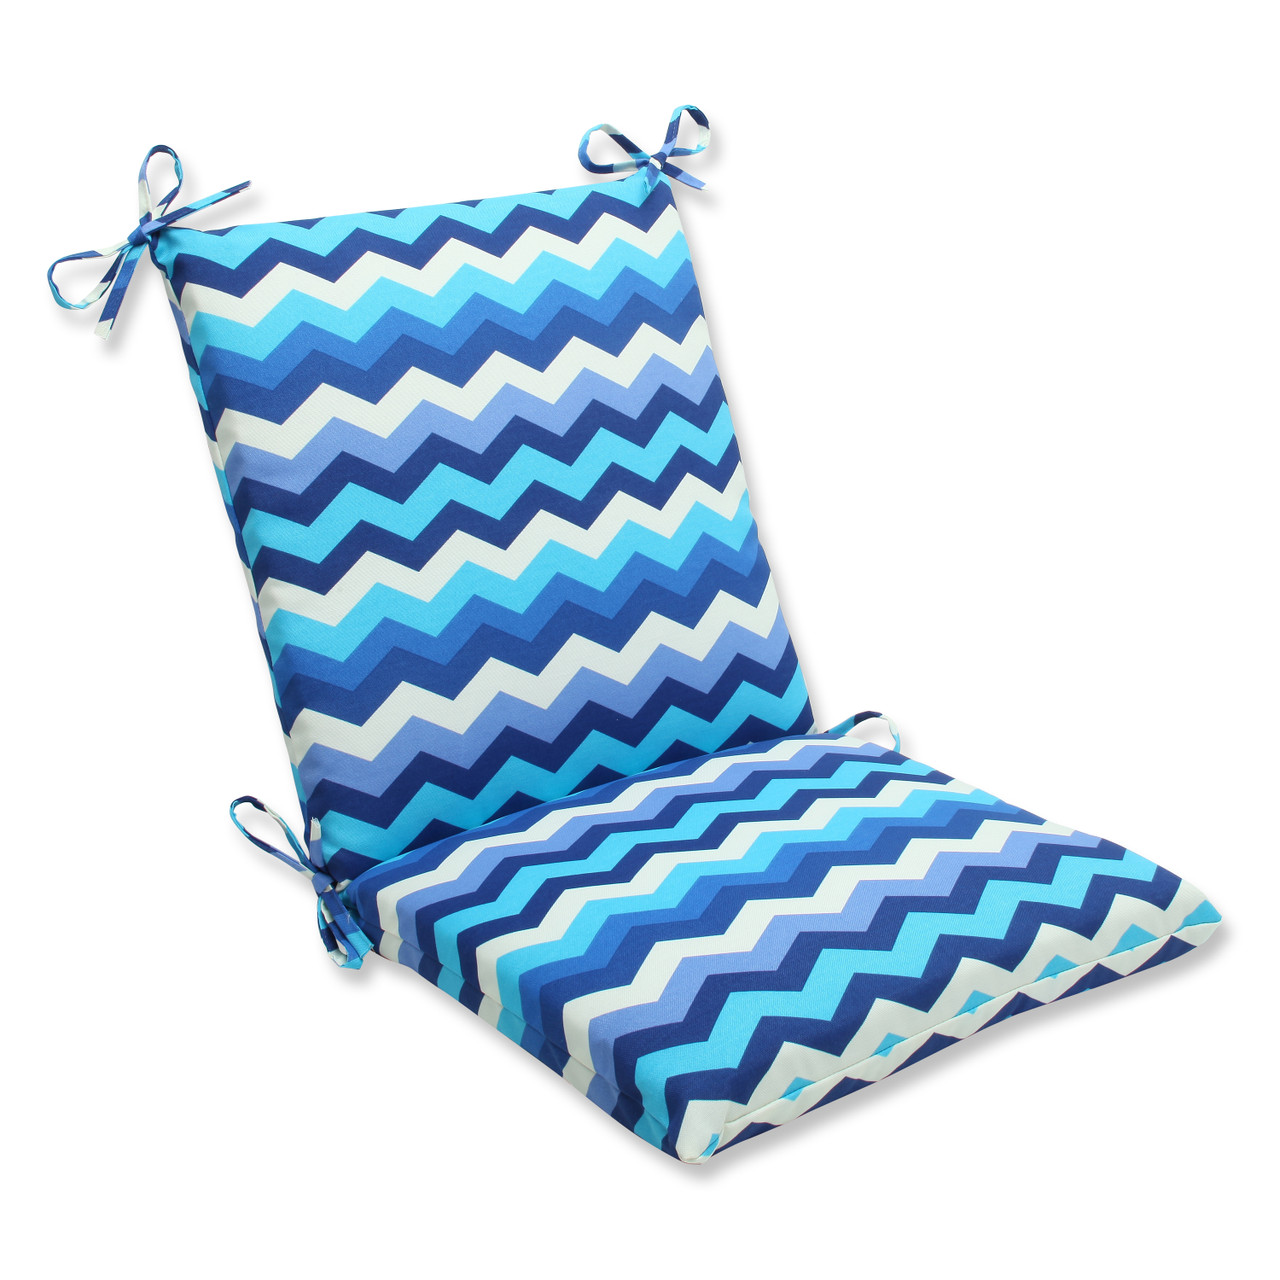 Pillow Perfect Panama Wave Azure Squared Corners Chair Cushion Trees N Trends Home Fashion More